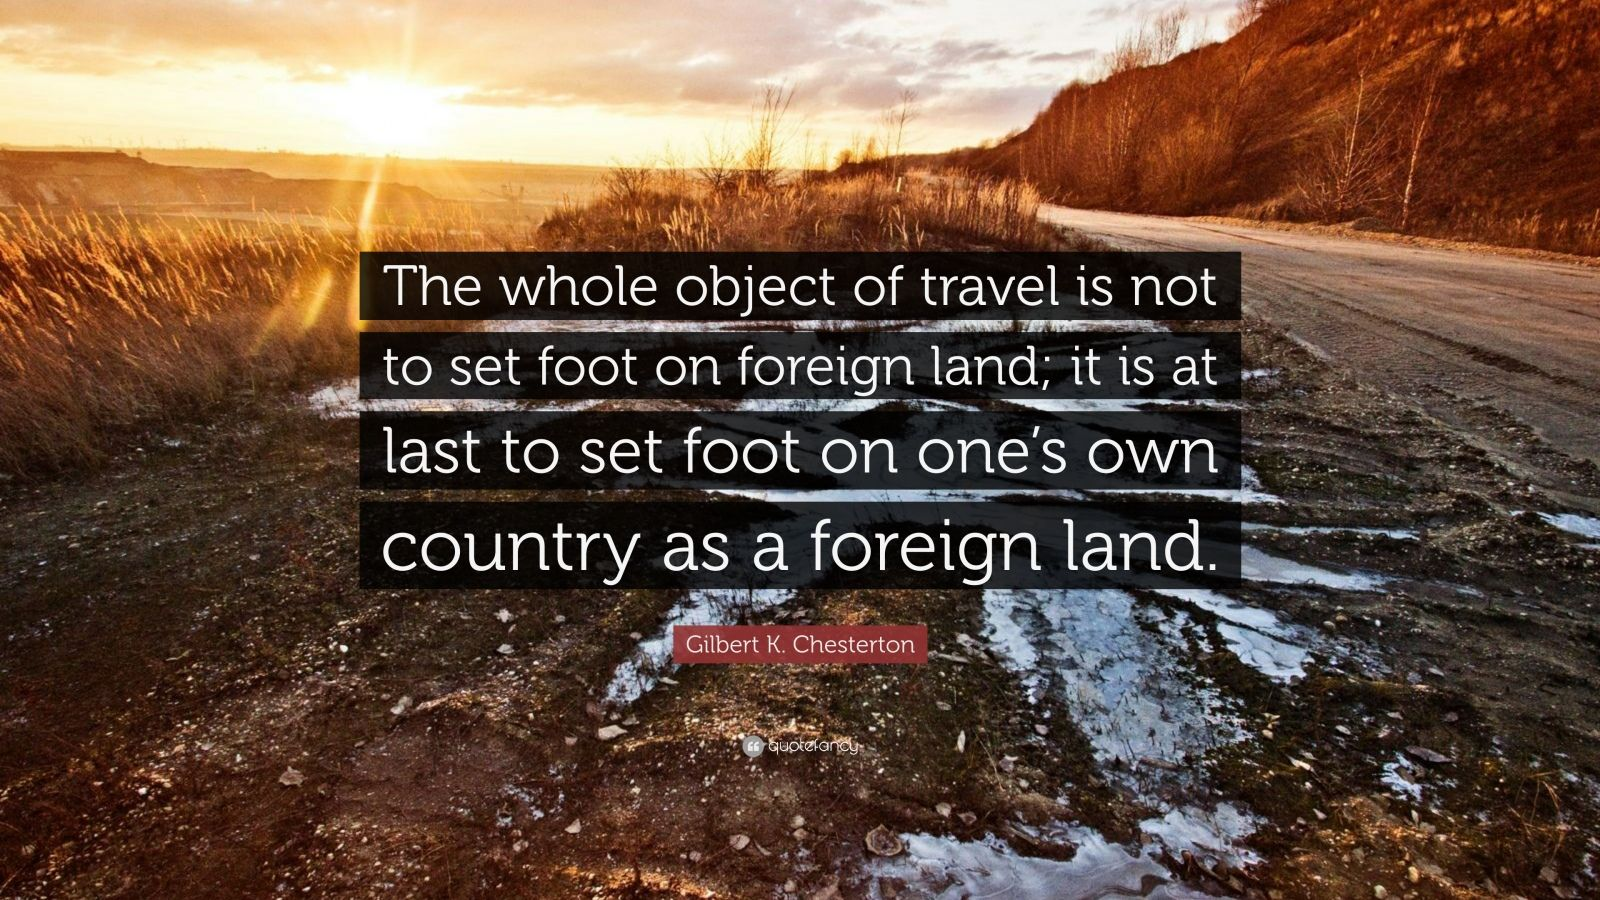 """Gilbert K. Chesterton Quote: """"The whole object of travel is not to set foot on foreign land; it is at last to set foot on one's own country as a foreign land."""""""